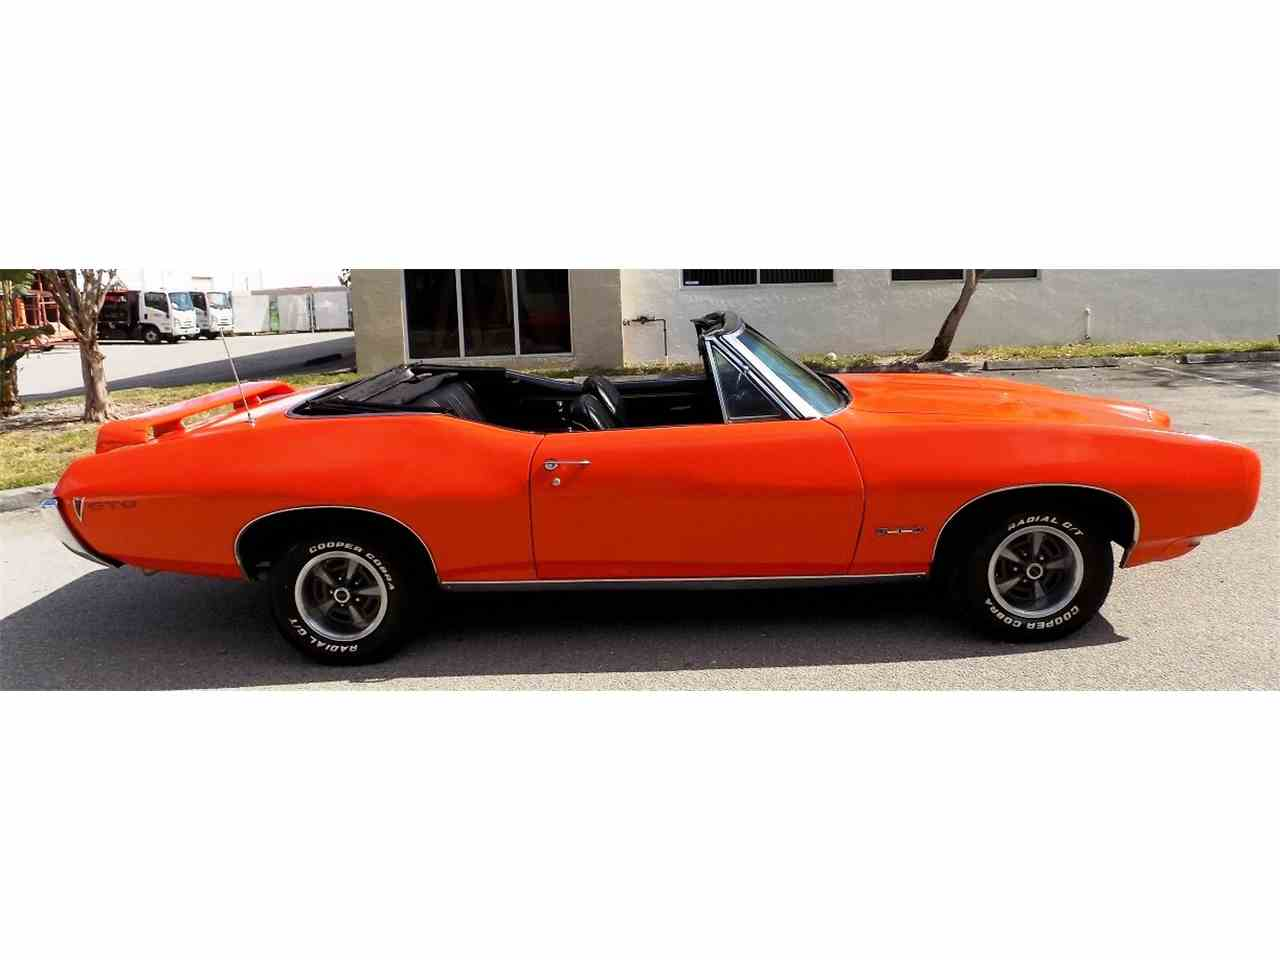 Large Picture of Classic 1968 Pontiac GTO located in POMPANO BEACH Florida - $26,995.00 - JRS0